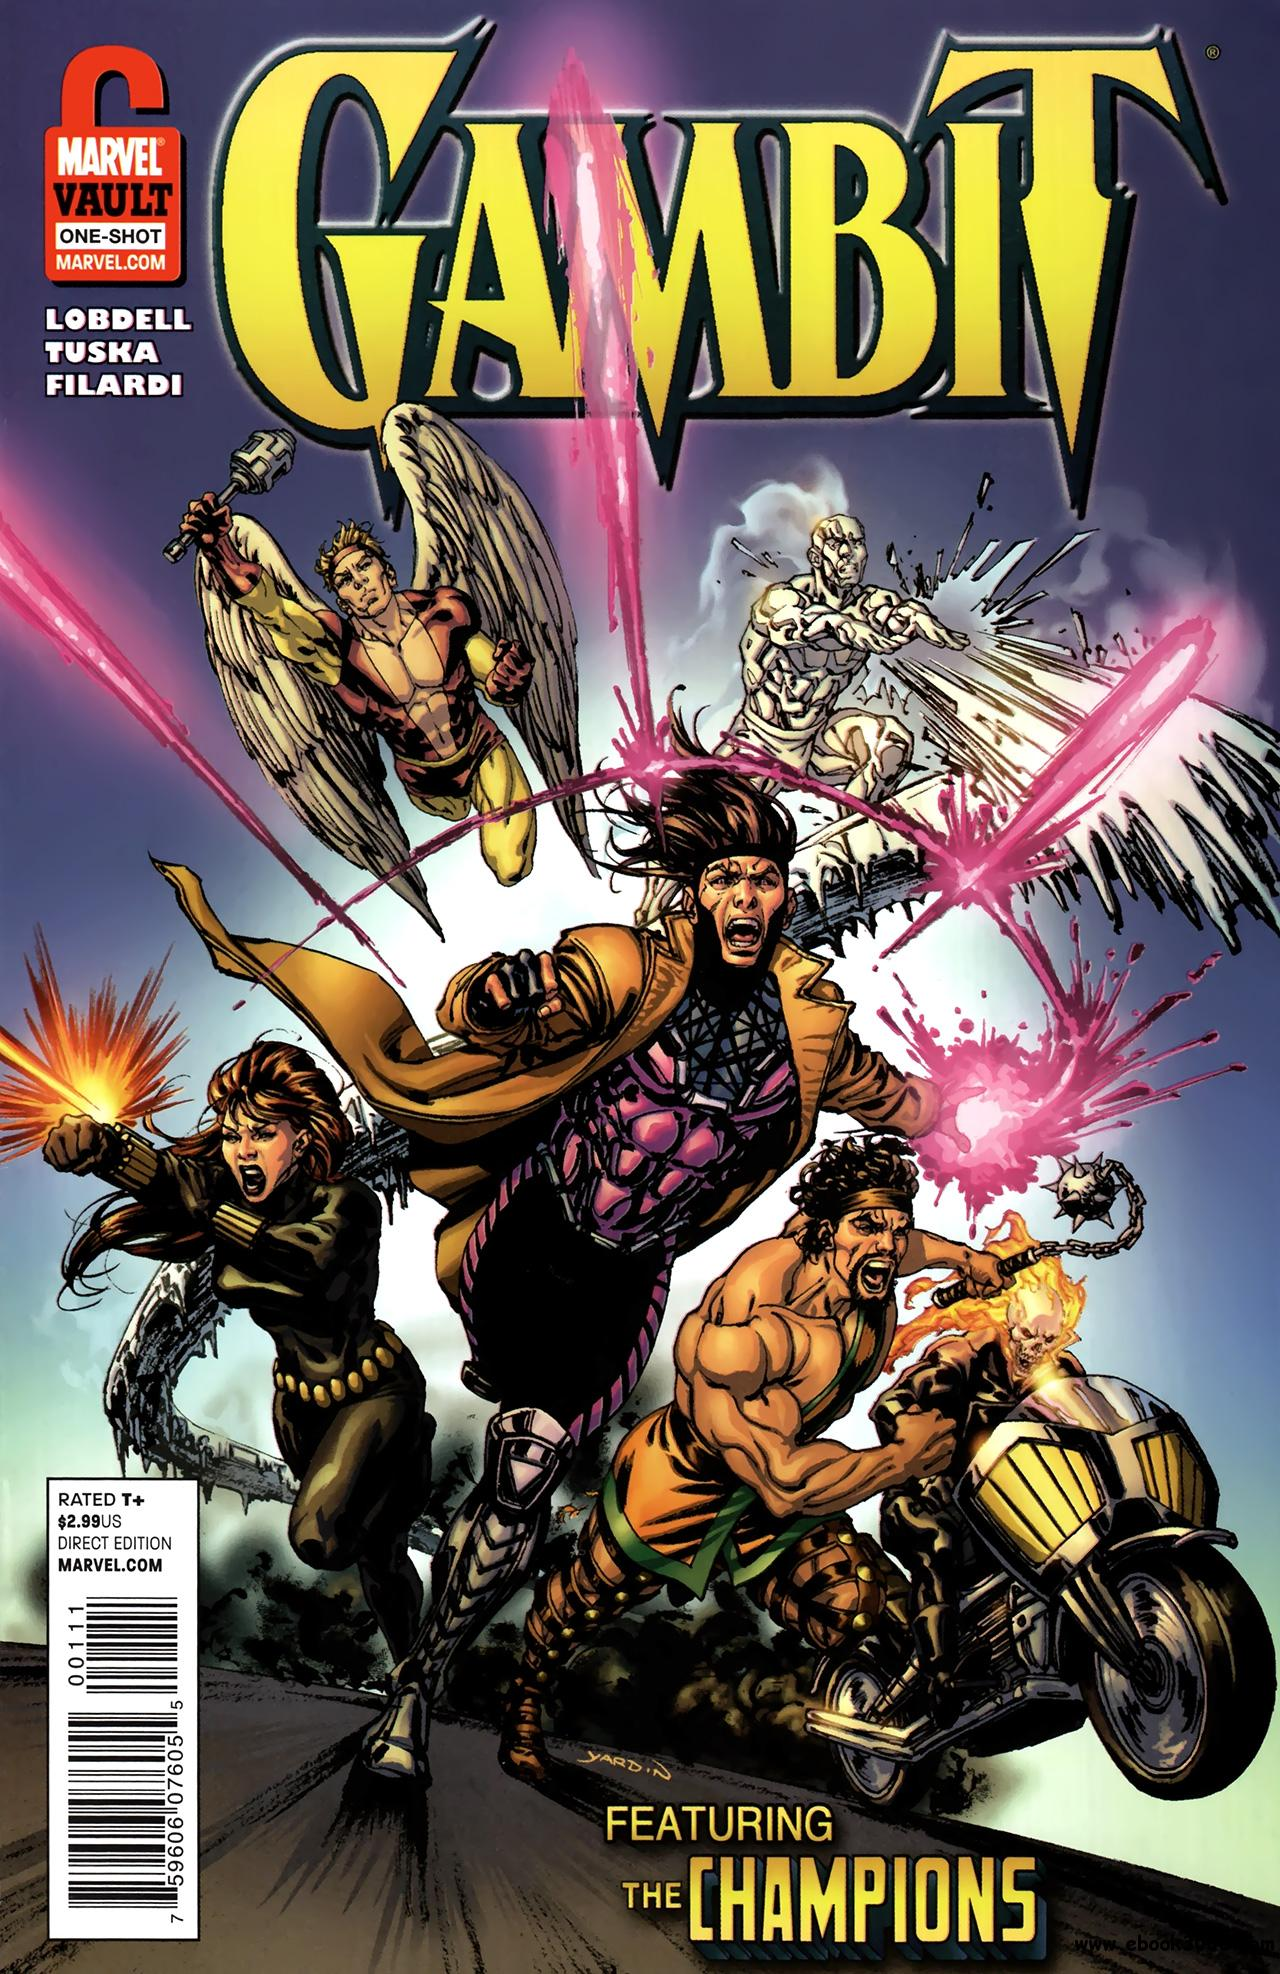 Gambit and the Champions - From the Marvel Vault #1 (2011) free download